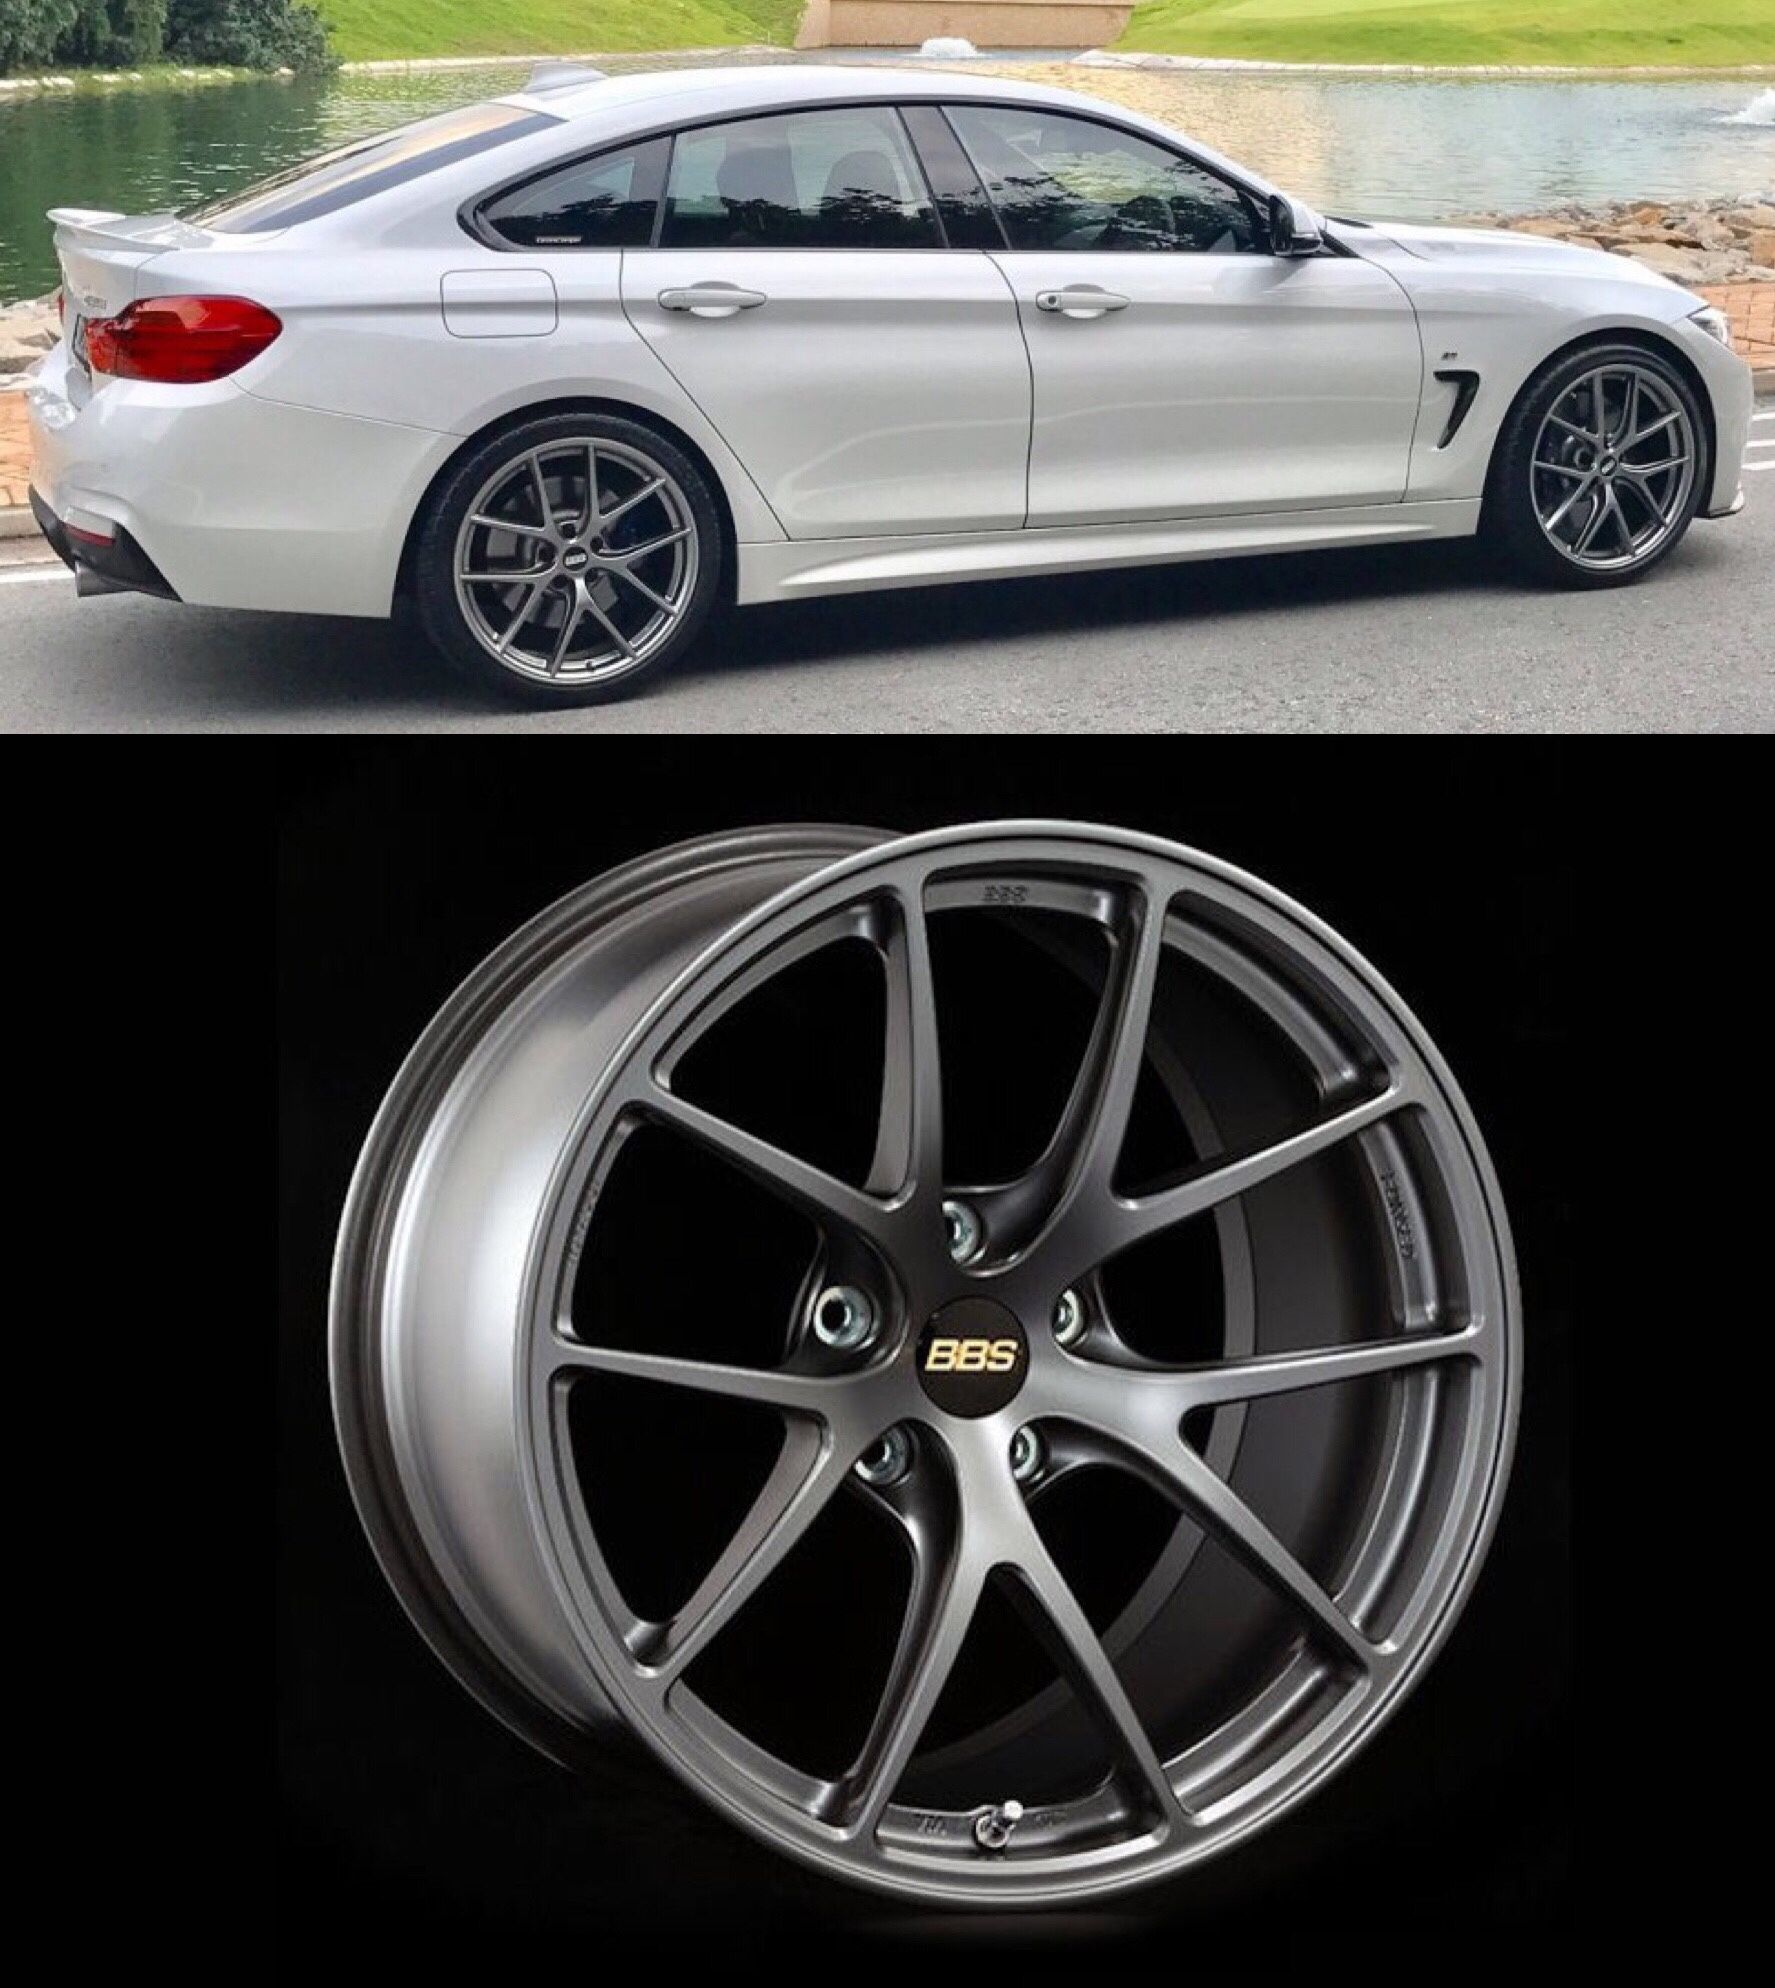 Bbs Ri A Fitted On F34 Bmw 435i Gran Coupe Bmw 4er Bmw 4er Gran Coupe 4er Gran Coupe